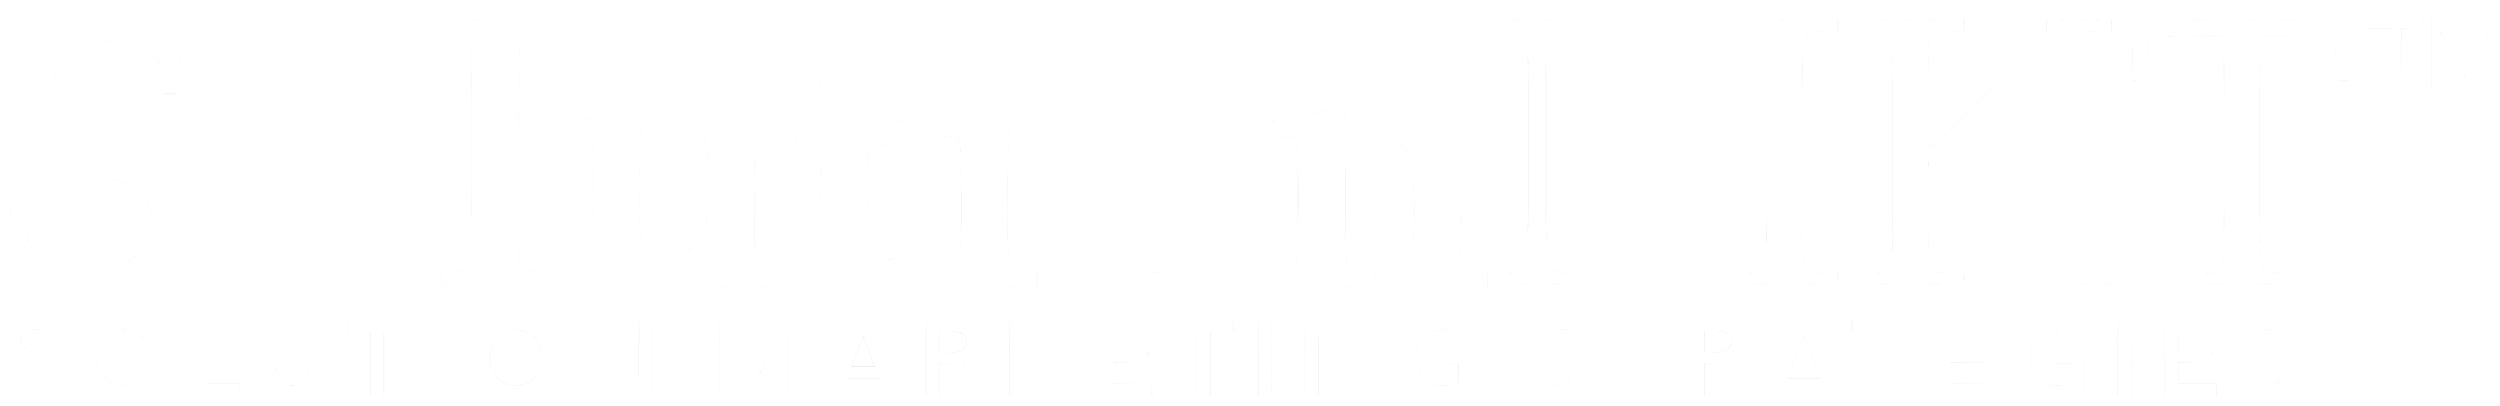 Solution Marketing Strategies